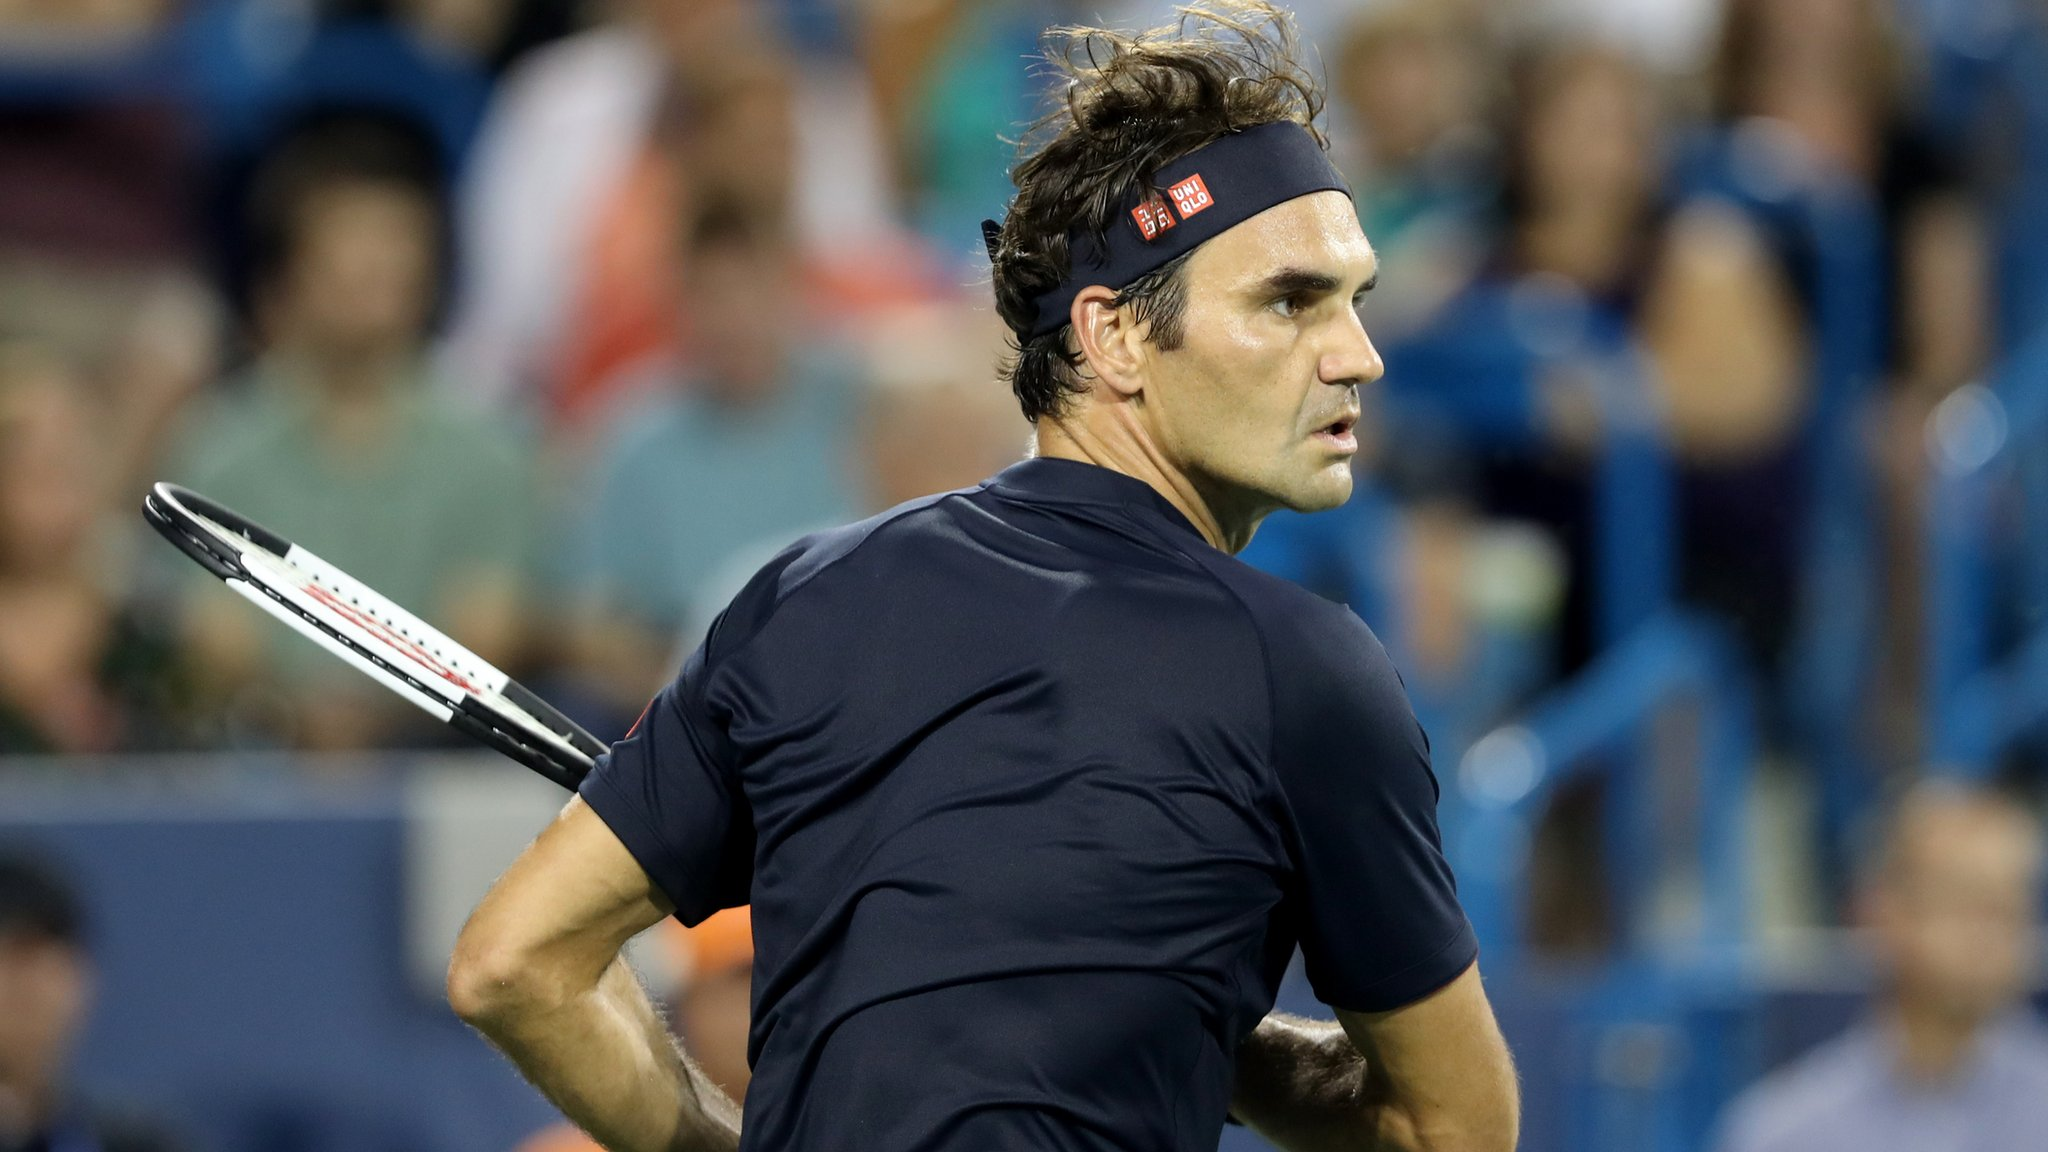 Cincinnati Masters: Roger Federer wins second game in a day to reach semi-finals